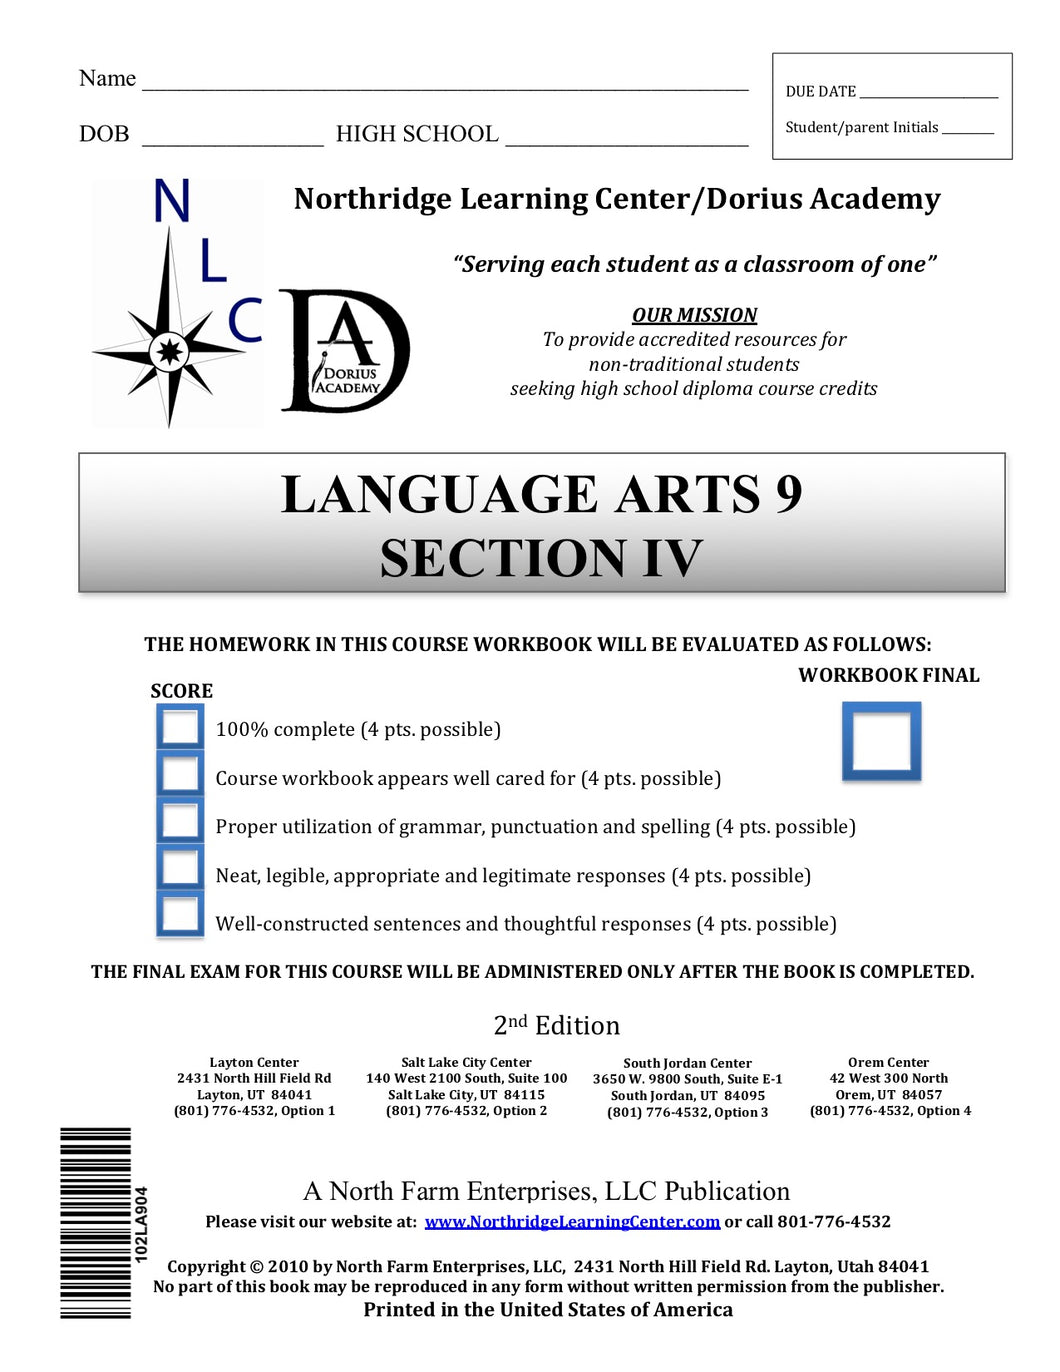 Language Arts 9, Section IV